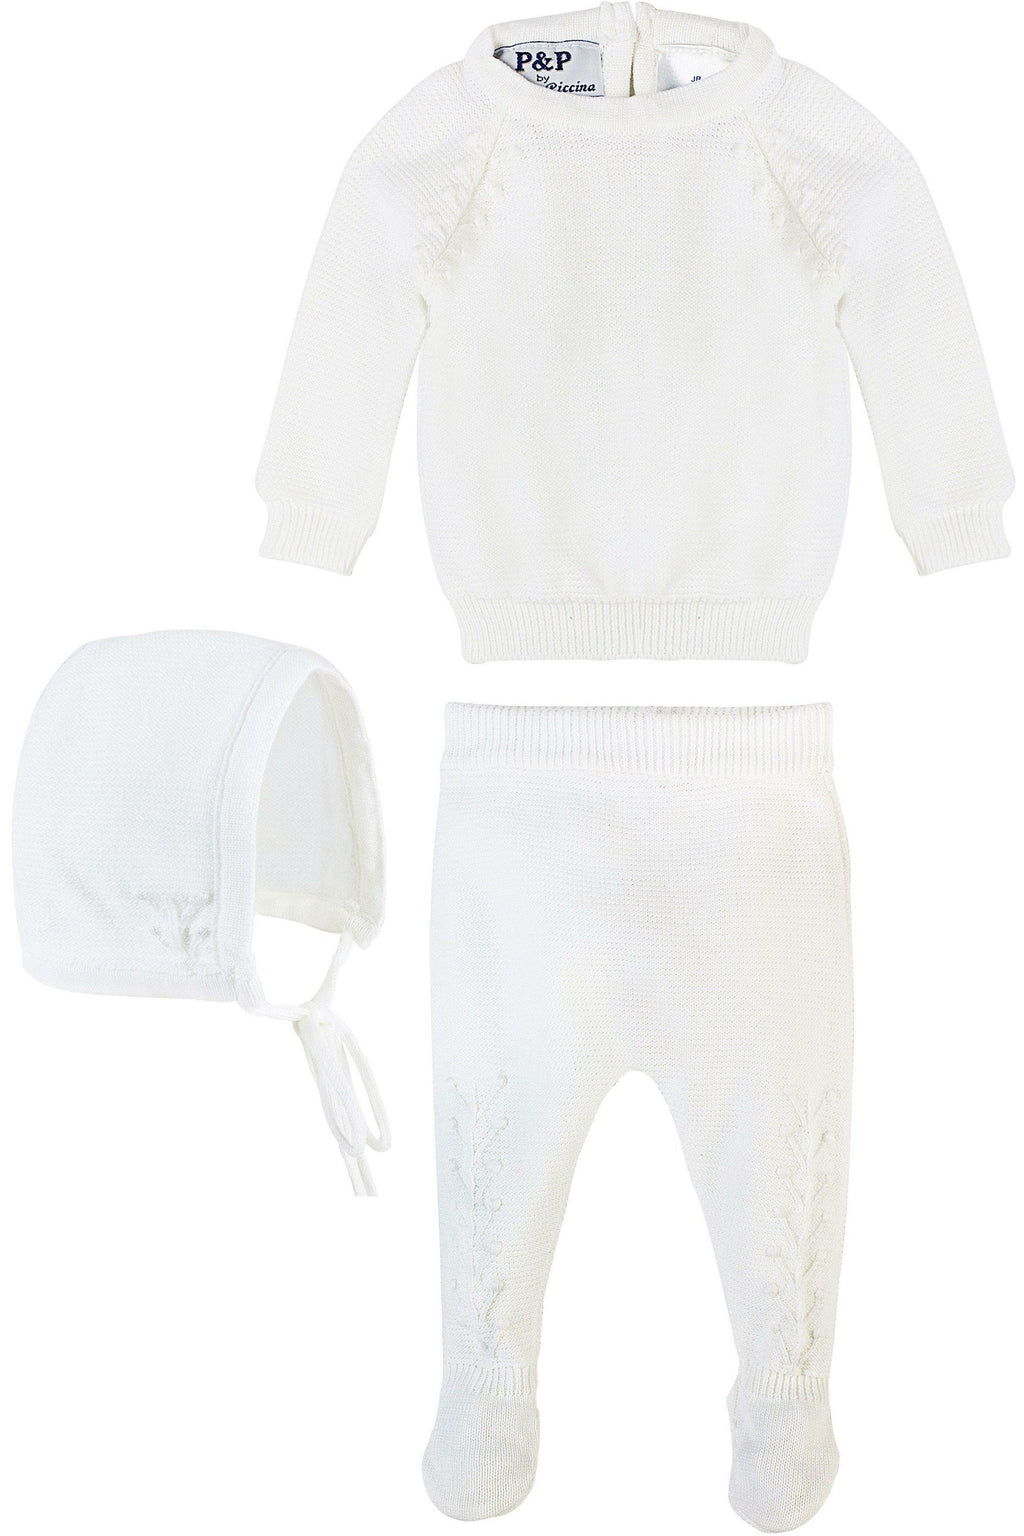 Baby Boy Special Occasion 2 Piece Knit Leaf Outfit + Bonnet